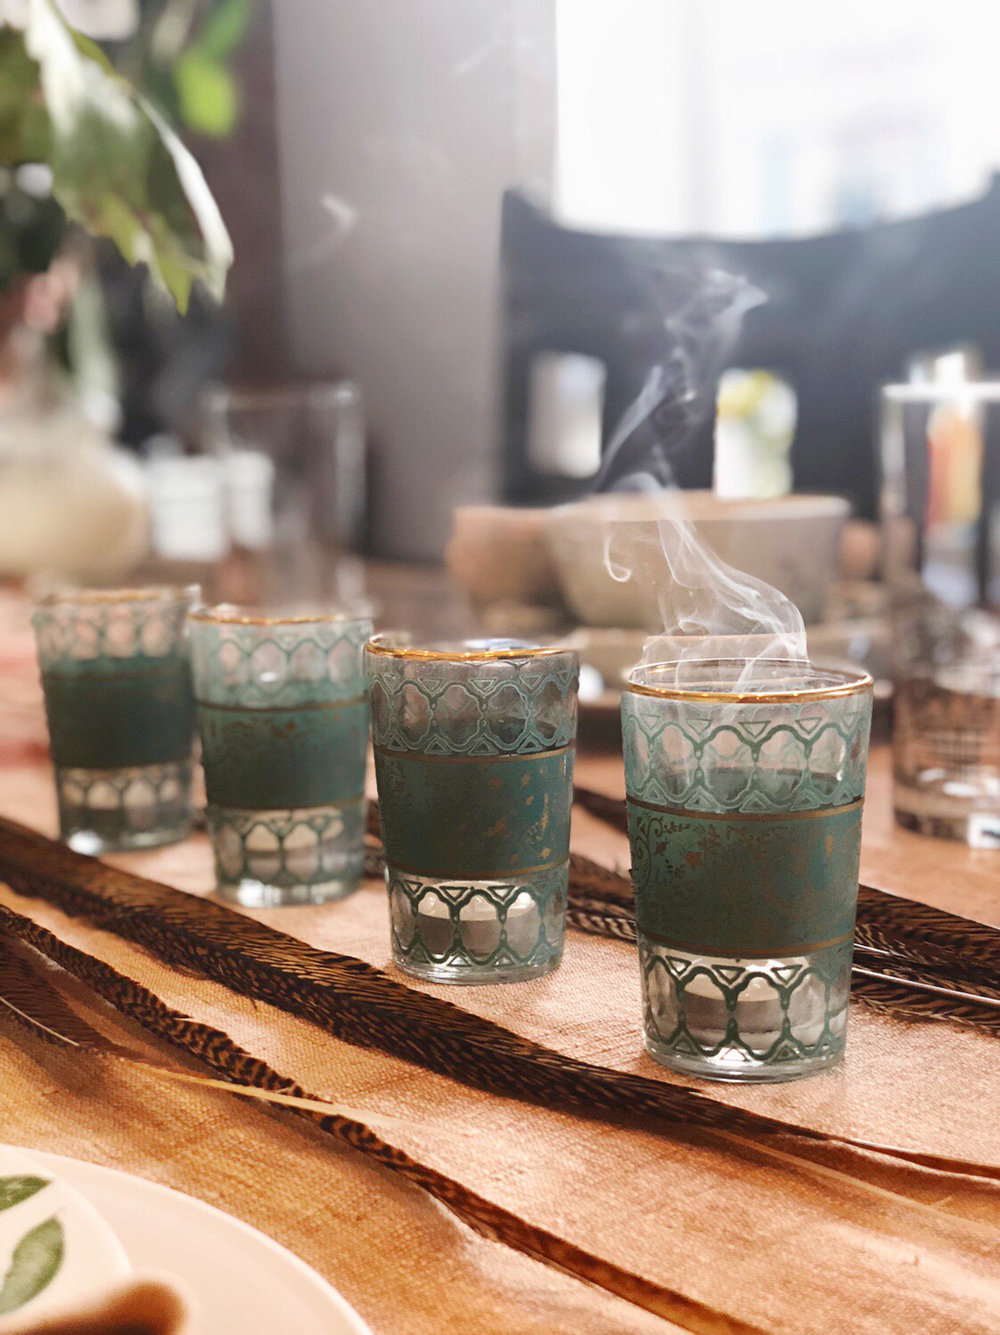 Light candles for immediately setting the scene for your dinner guests. Don't be overwhelmed by hosting a fabulous dinner party. These tips and tricks will help you create the best place setting tablescape and dinner party for friends.